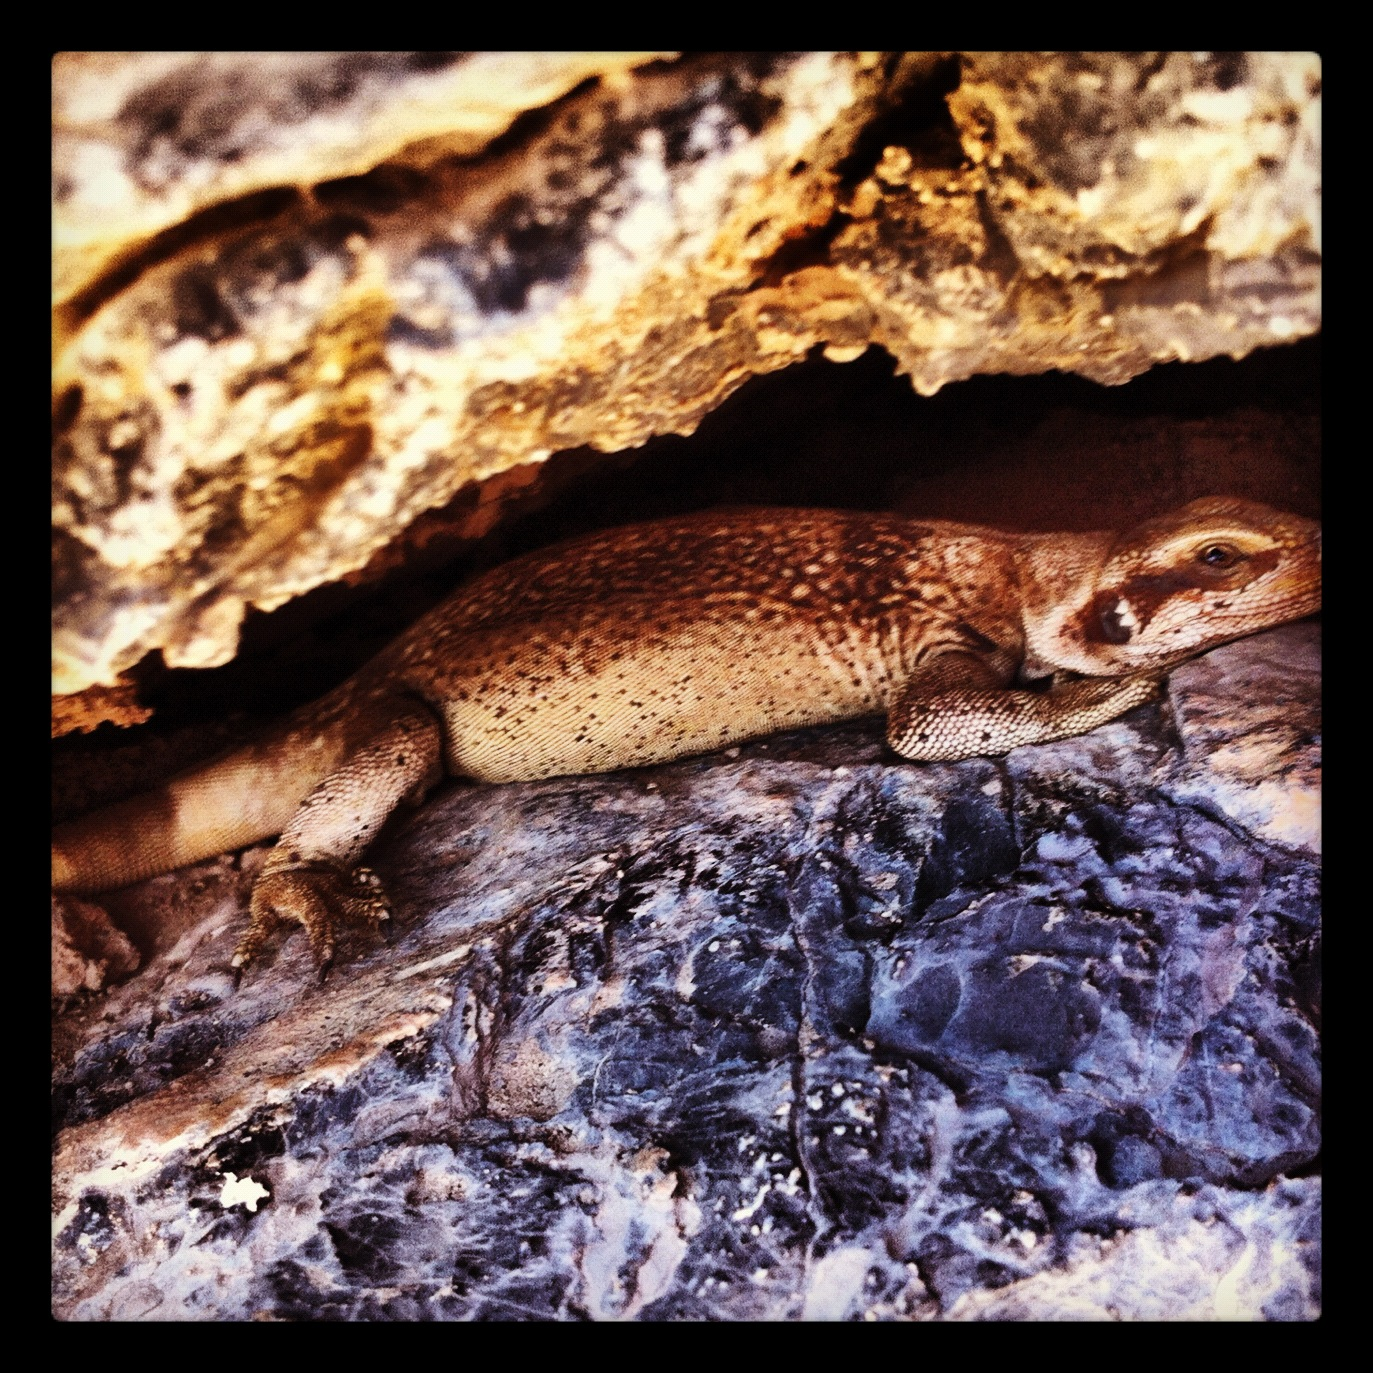 Real chuckwalla, or fake chuckwalla?